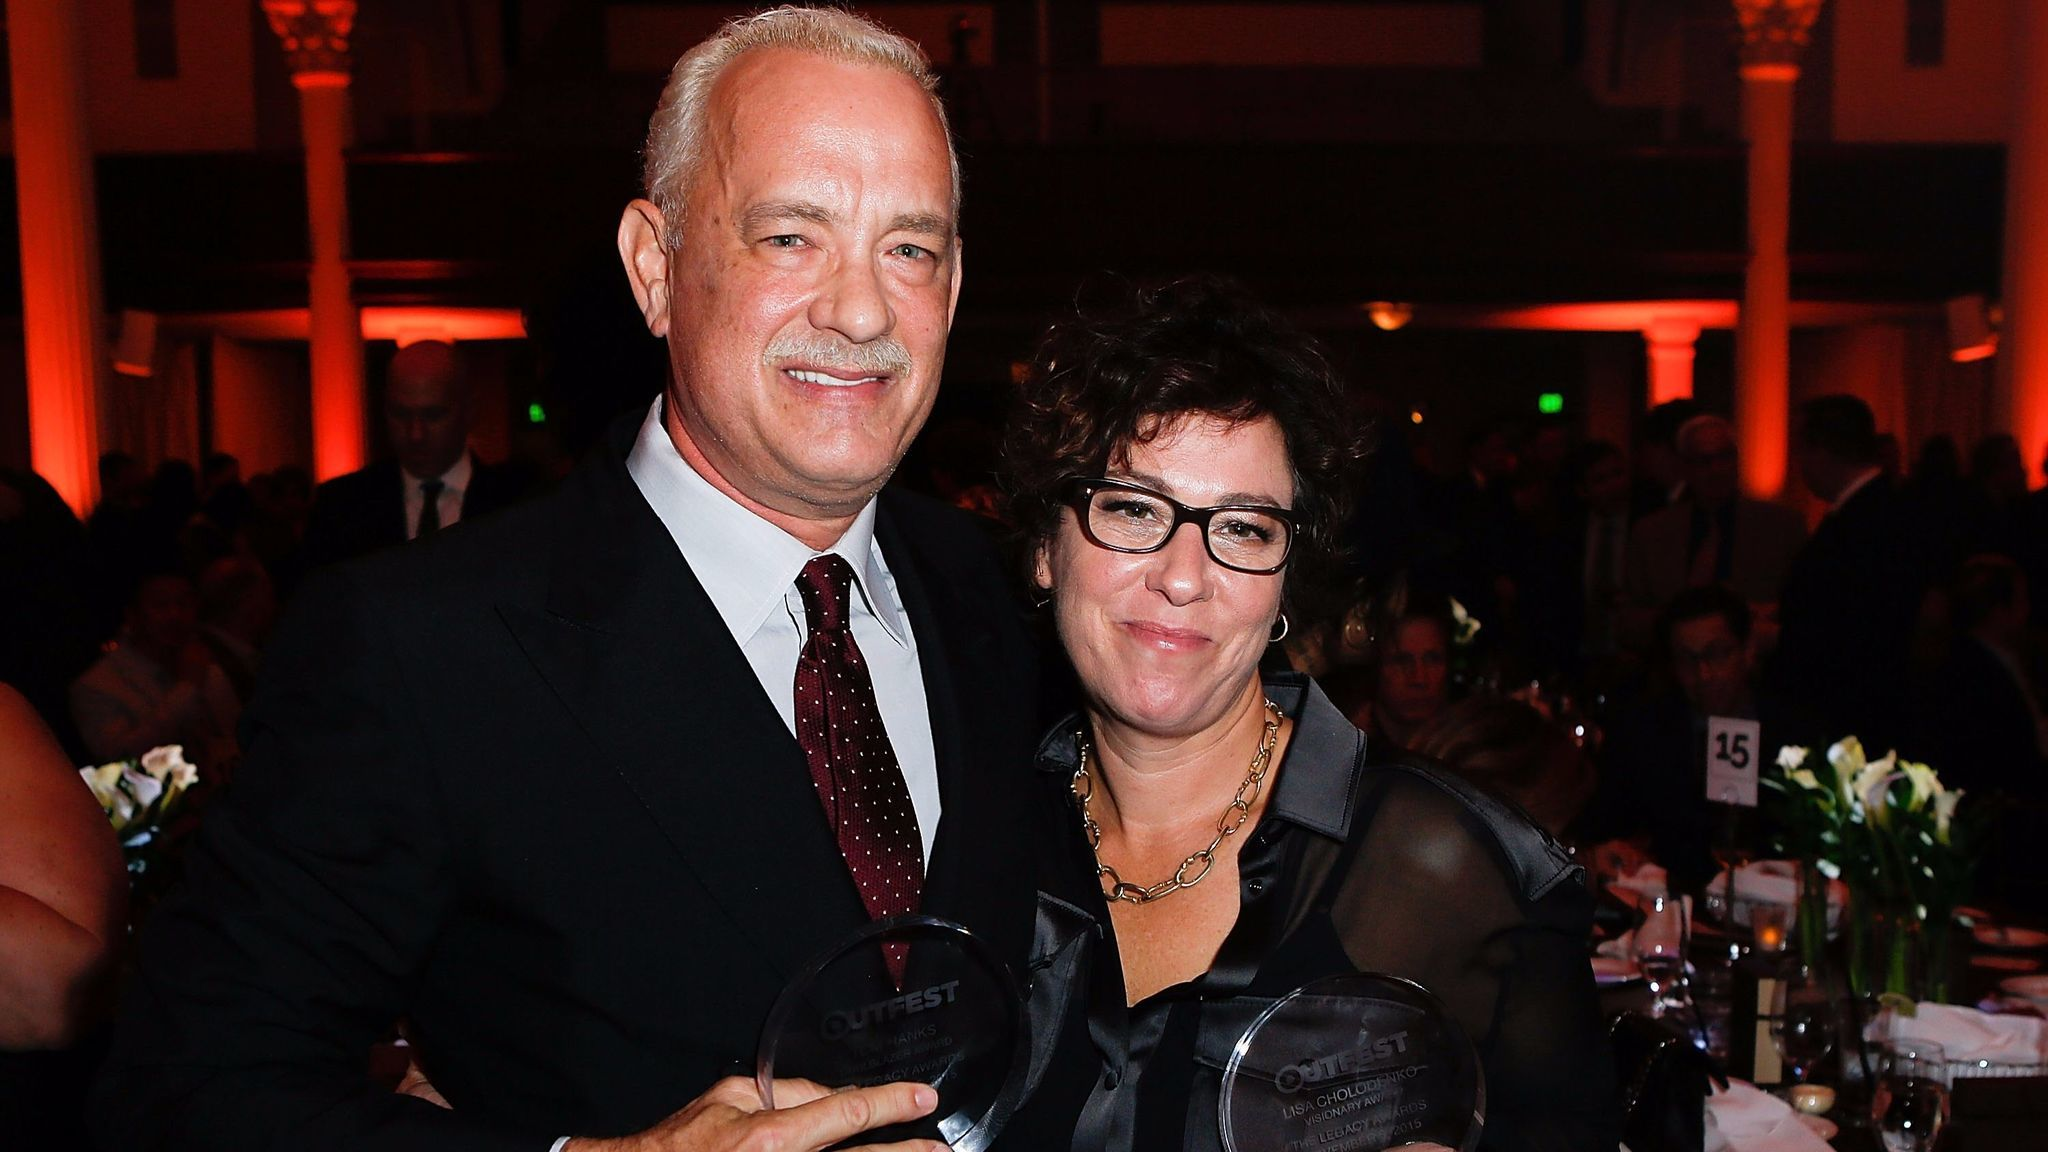 Award recipients Tom Hanks and Lisa Cholodenko at the 2015 Outfest Legacy Awards.